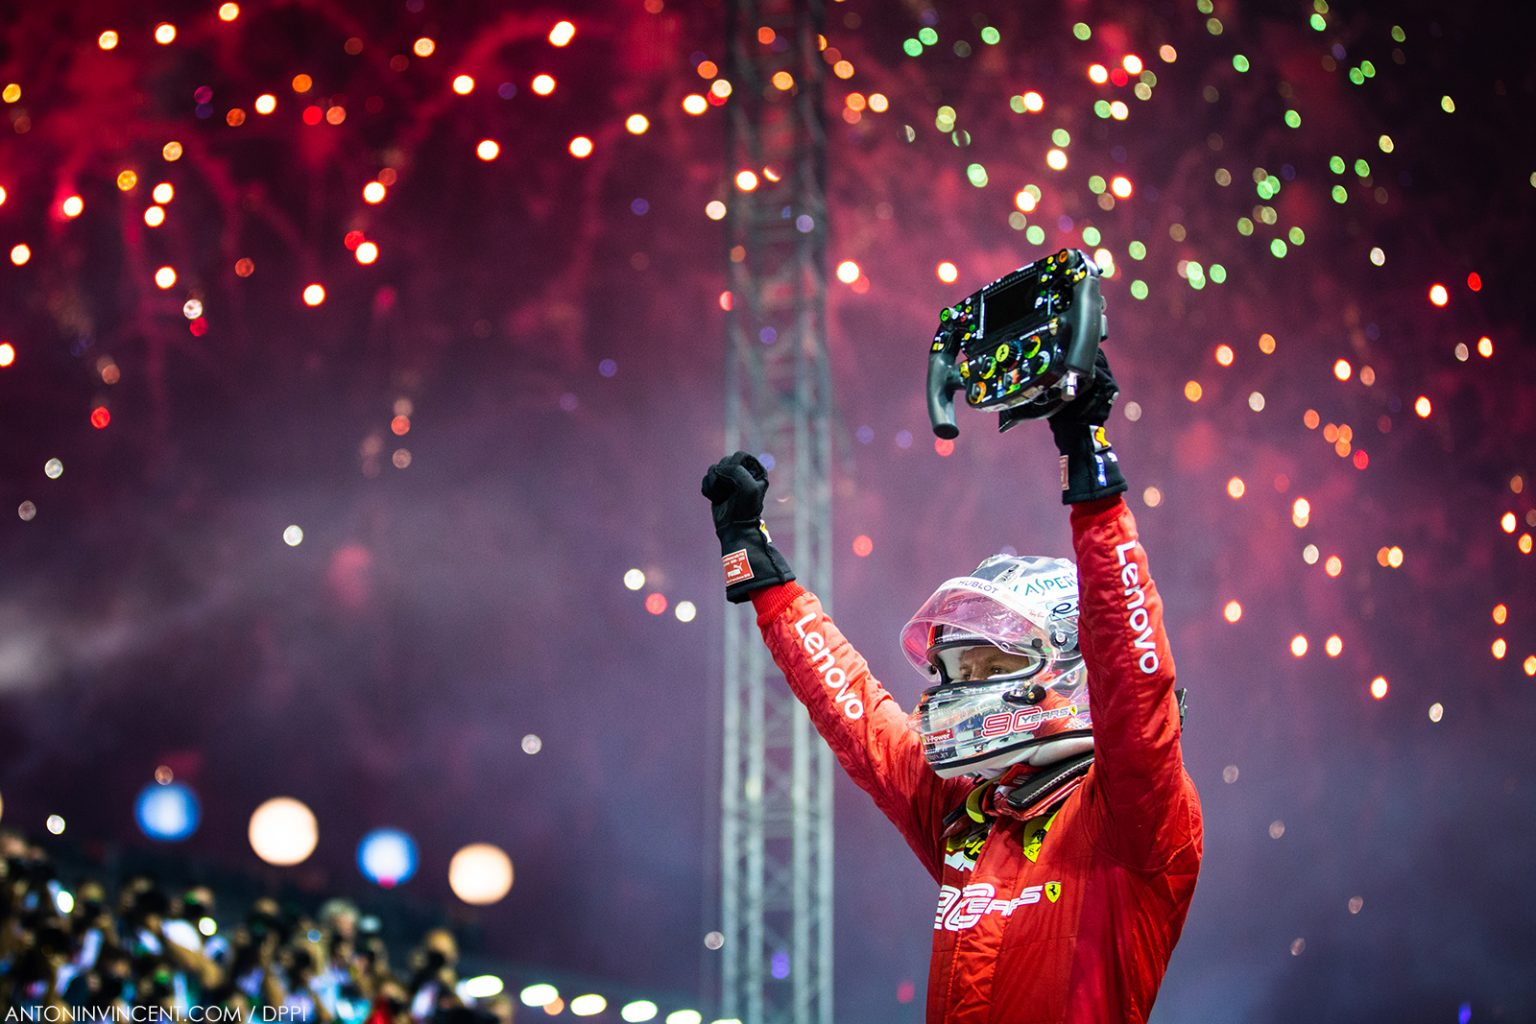 VETTEL Sebastian (ger), Scuderia Ferrari SF90, portrait celebration winning during the 2019 Formula One World Championship, Singapore Grand Prix from September 19 to 22 in Singapour - Photo Antonin Vincent / DPPI